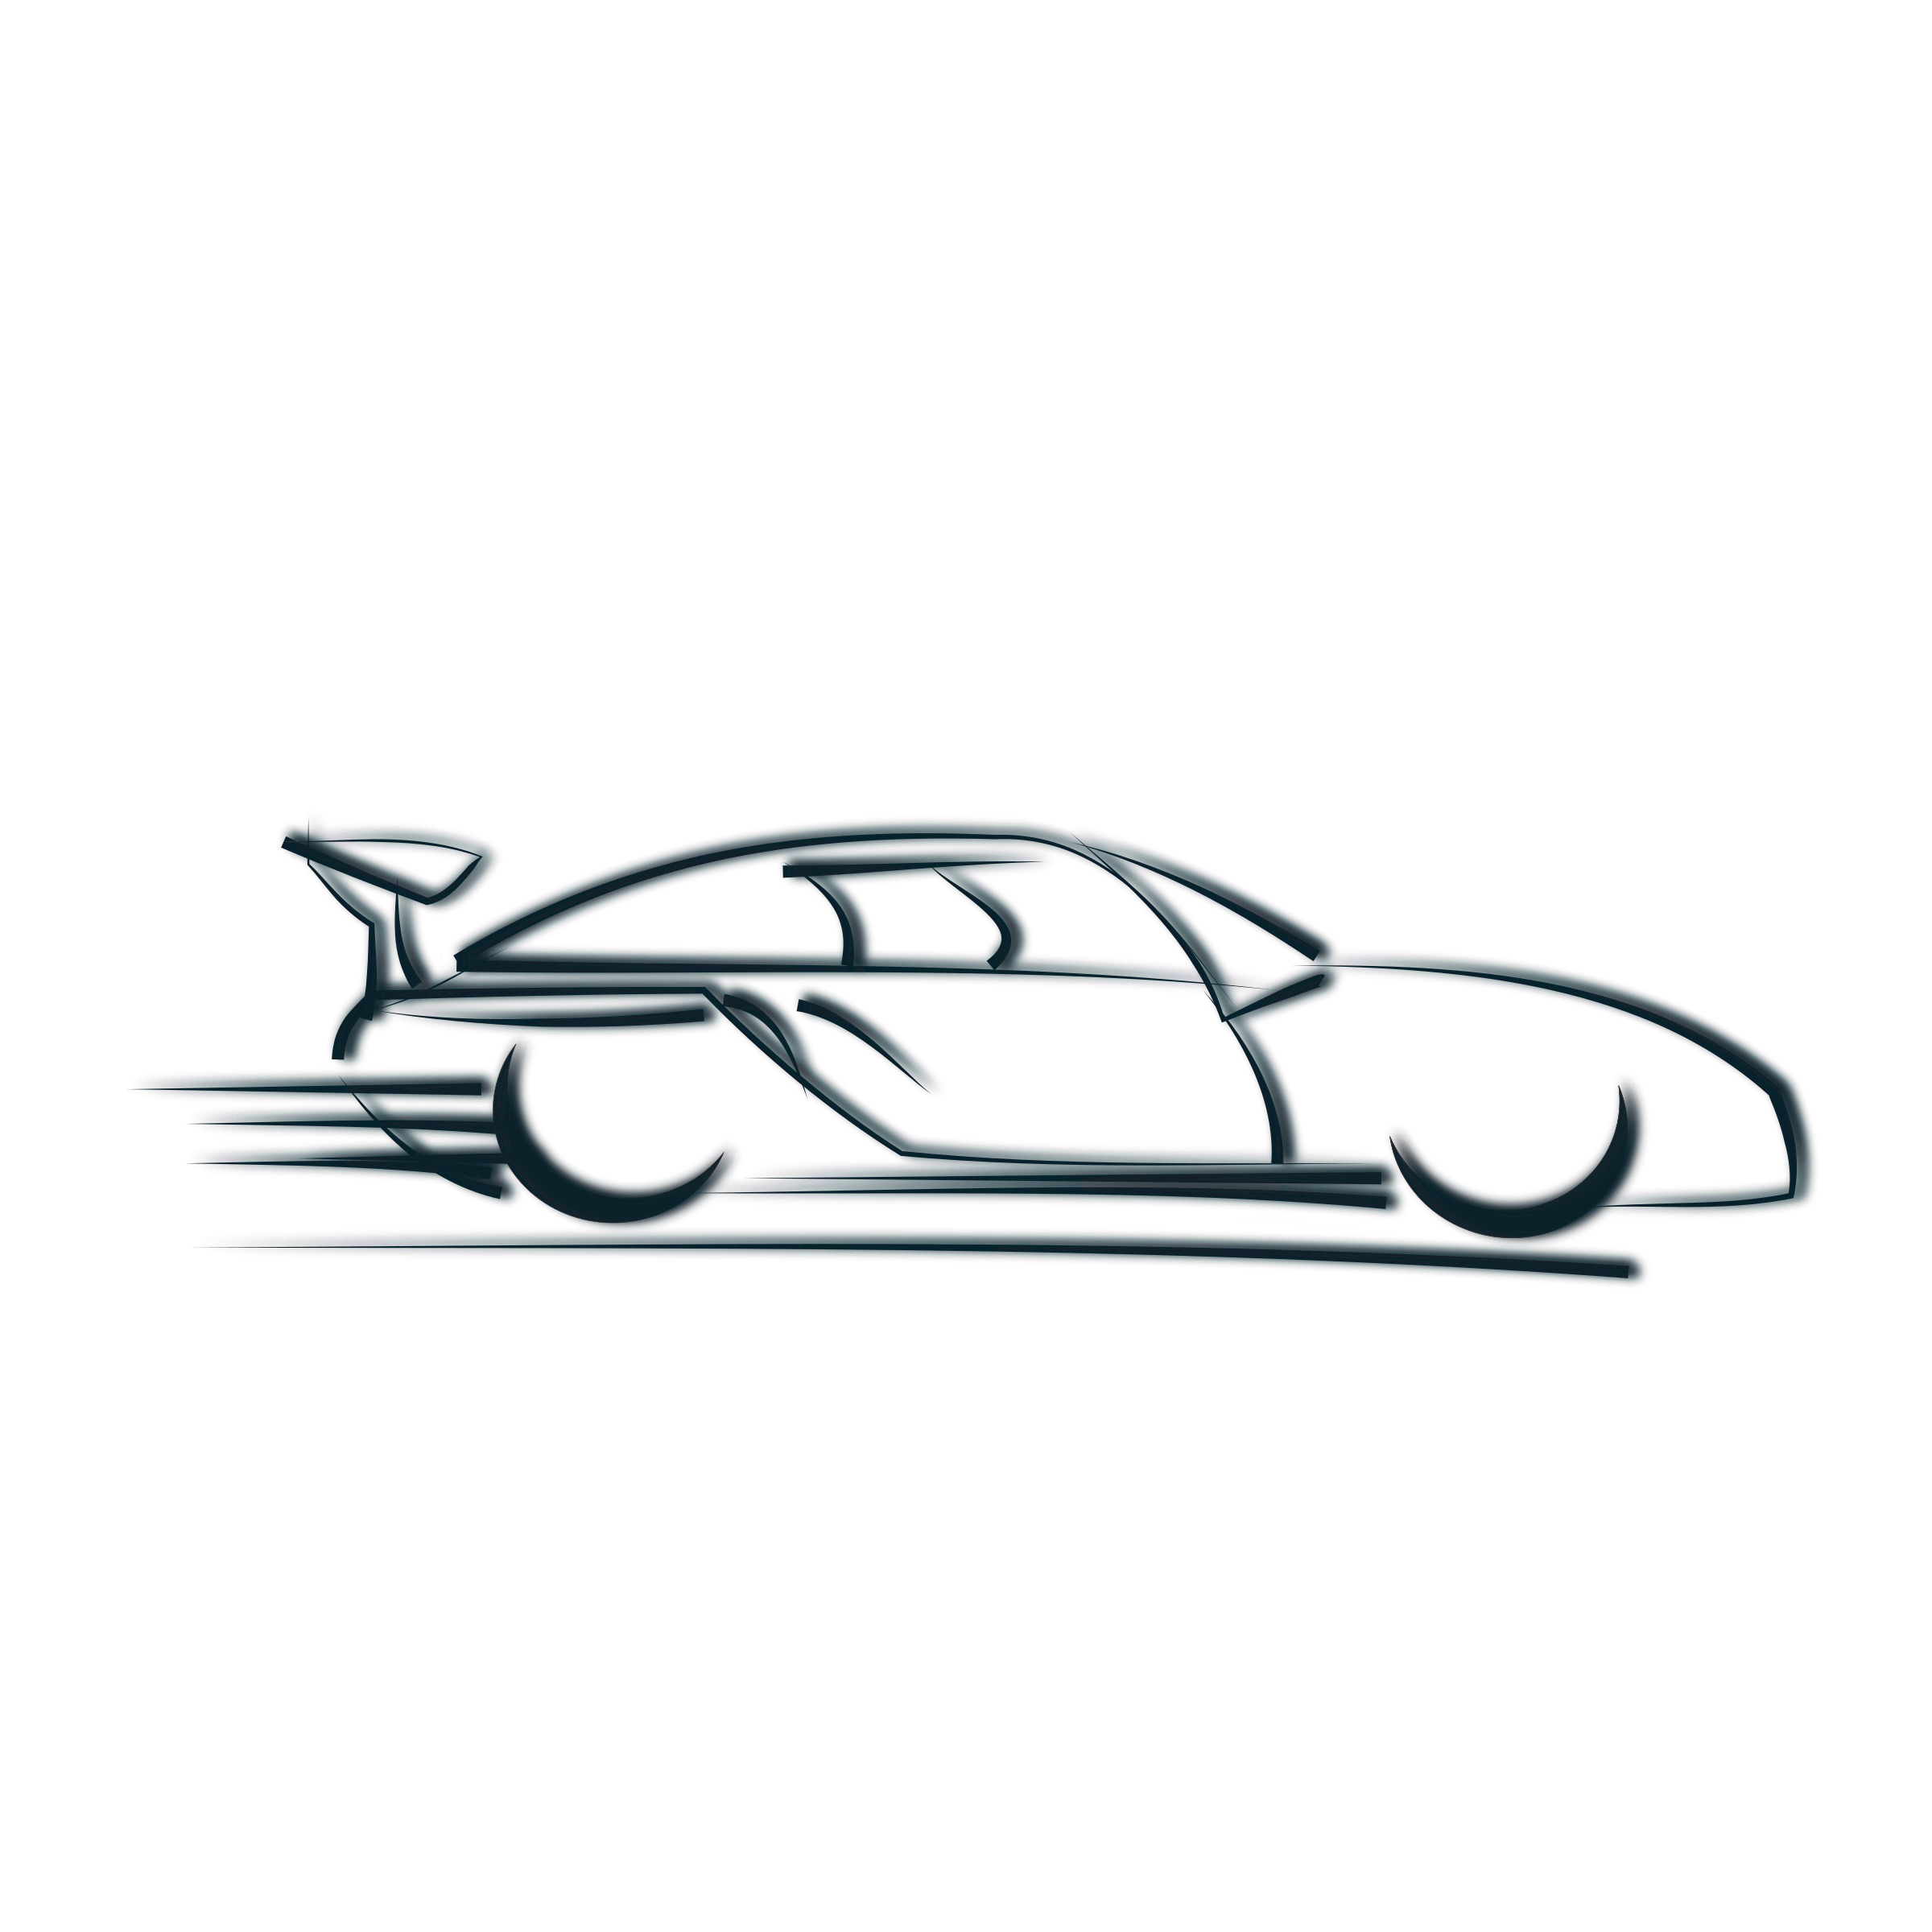 Image of a car clipart graphic royalty free library Free Moving Car Cliparts, Download Free Clip Art, Free Clip Art on ... graphic royalty free library